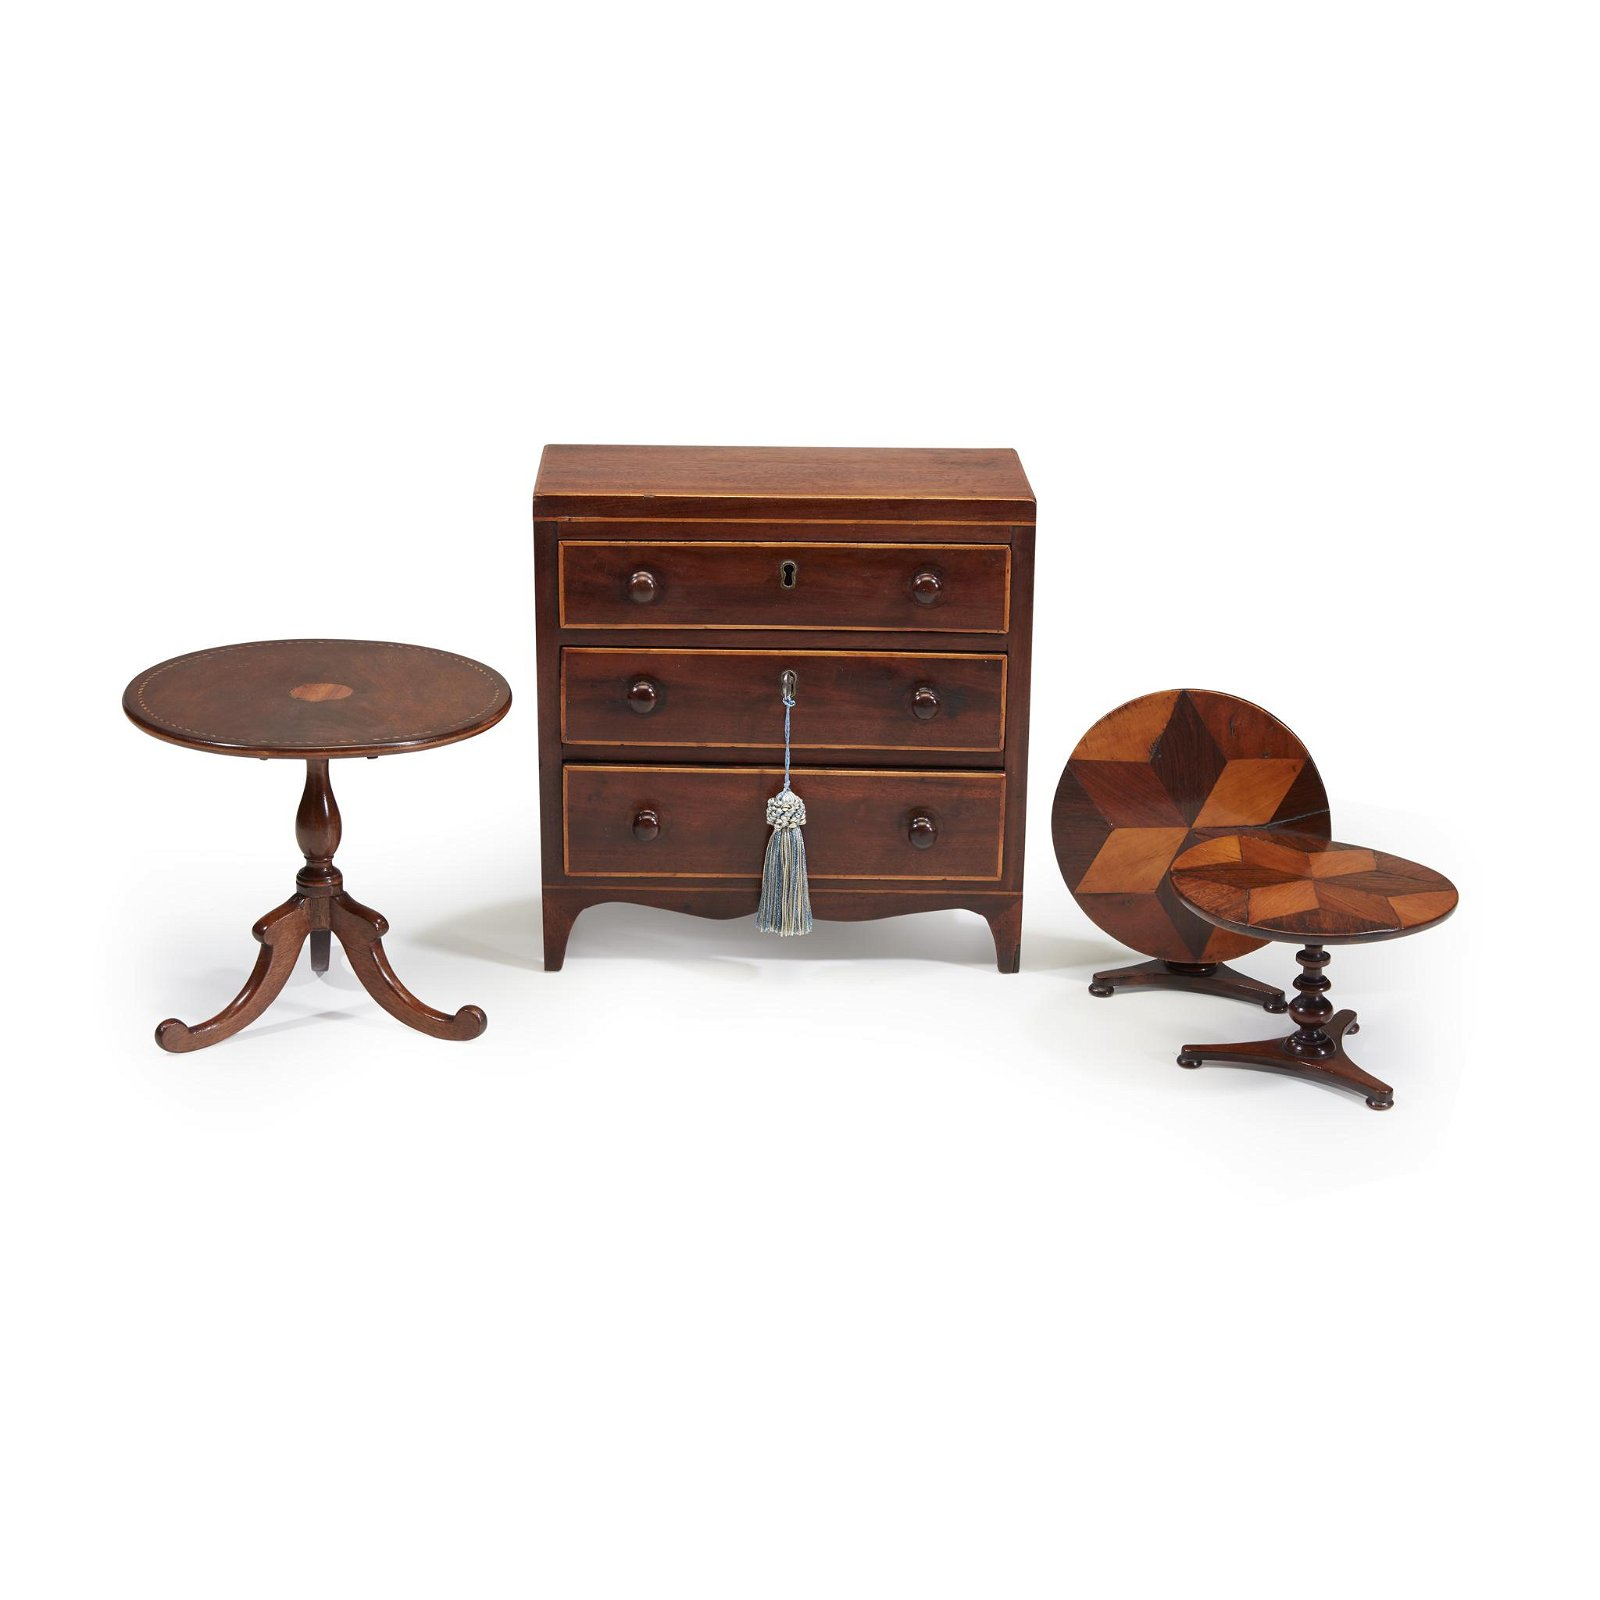 Group of miniature furniture items, 19th century